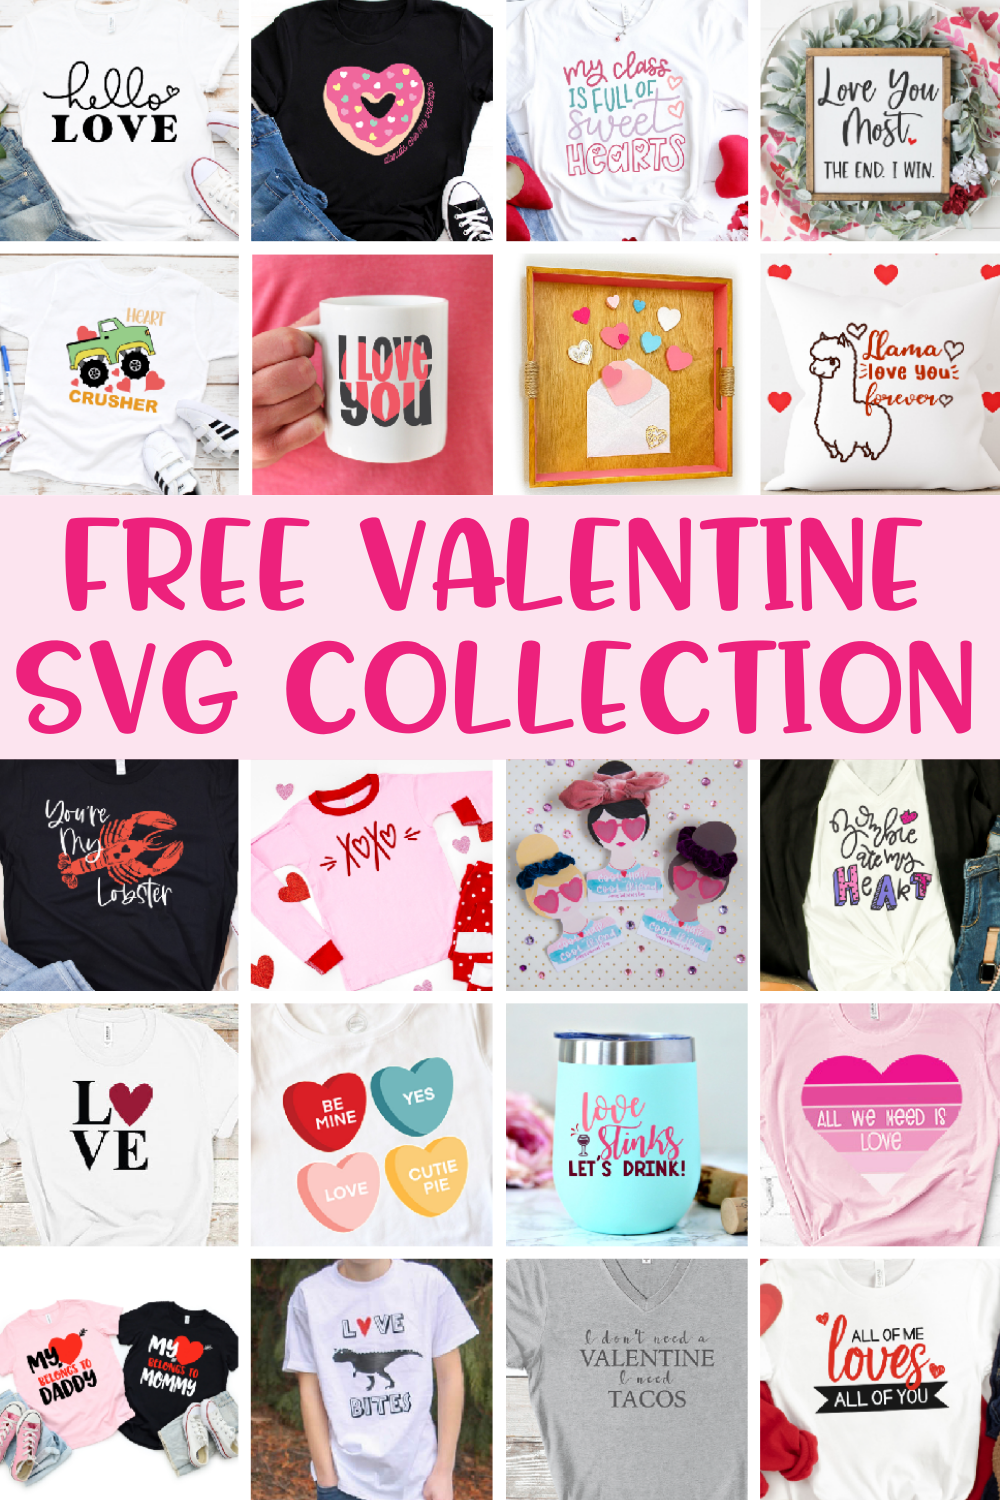 https://www.happygoluckyblog.com/wp-content/uploads/2021/01/Free-Valentine-SVG-Collection-1.png